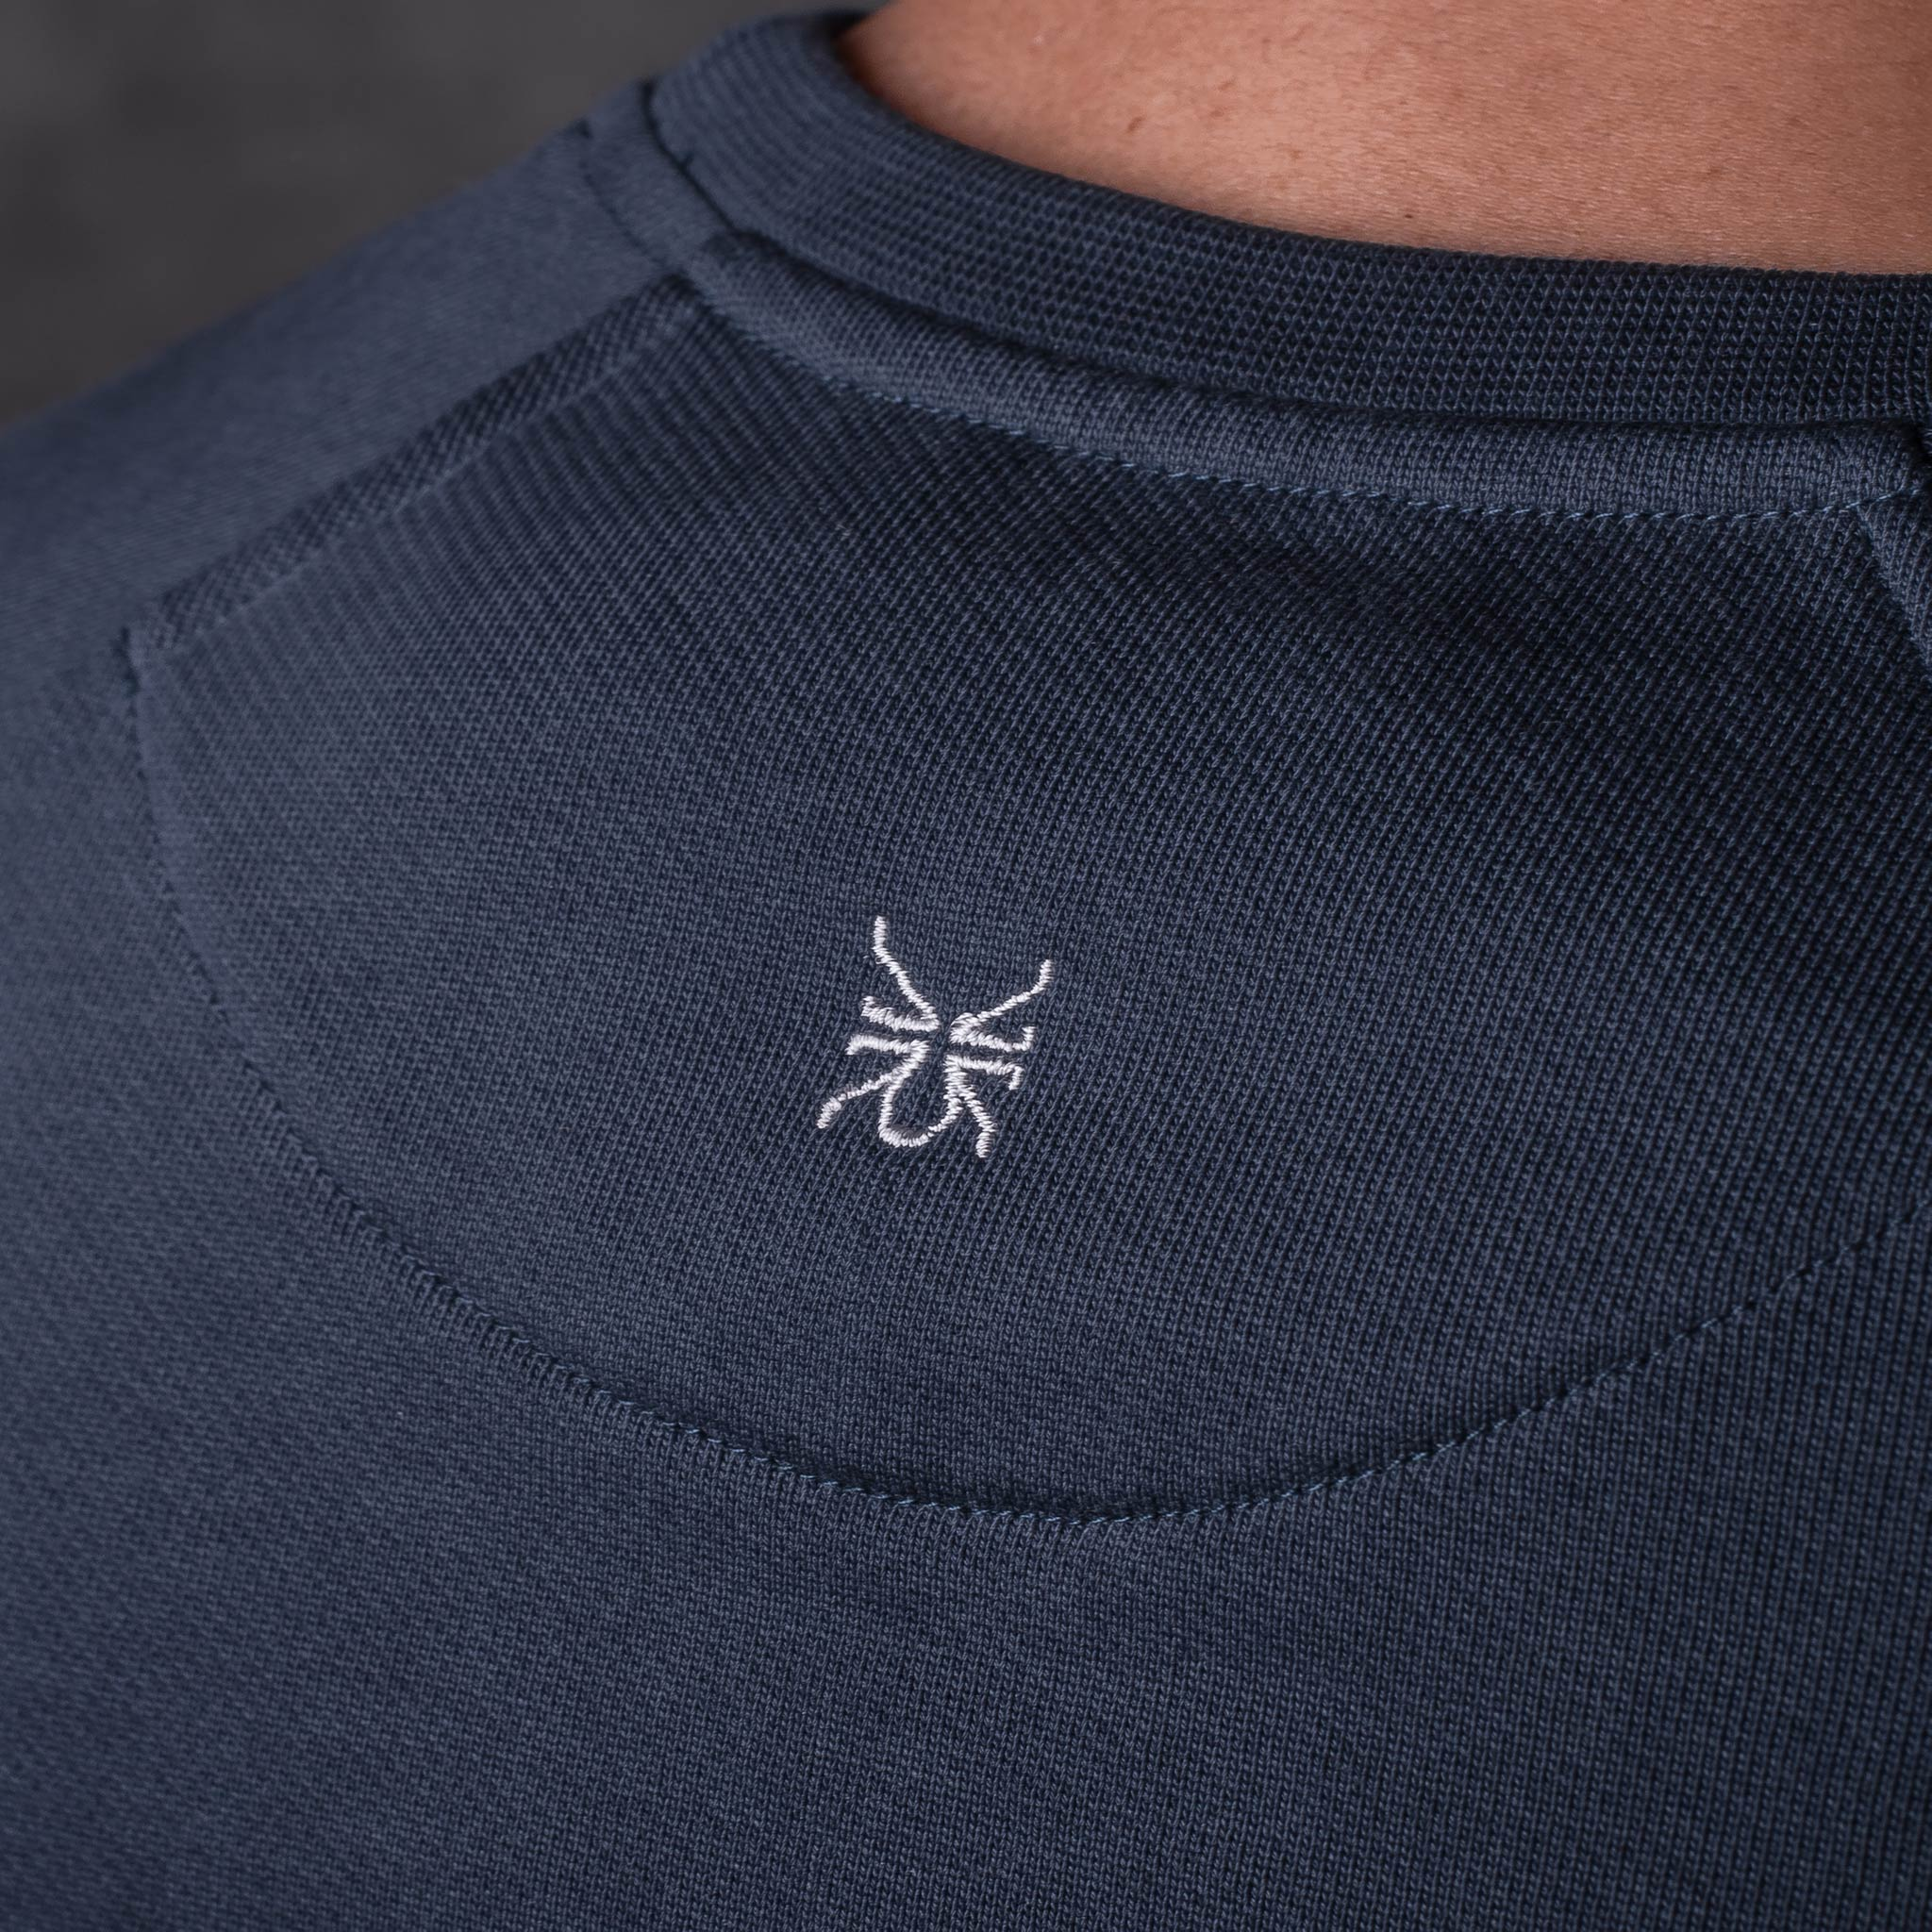 SWEATSHIRT 01.01 NAVY SUDADERA 01.01 AZUL The Seëlk 9